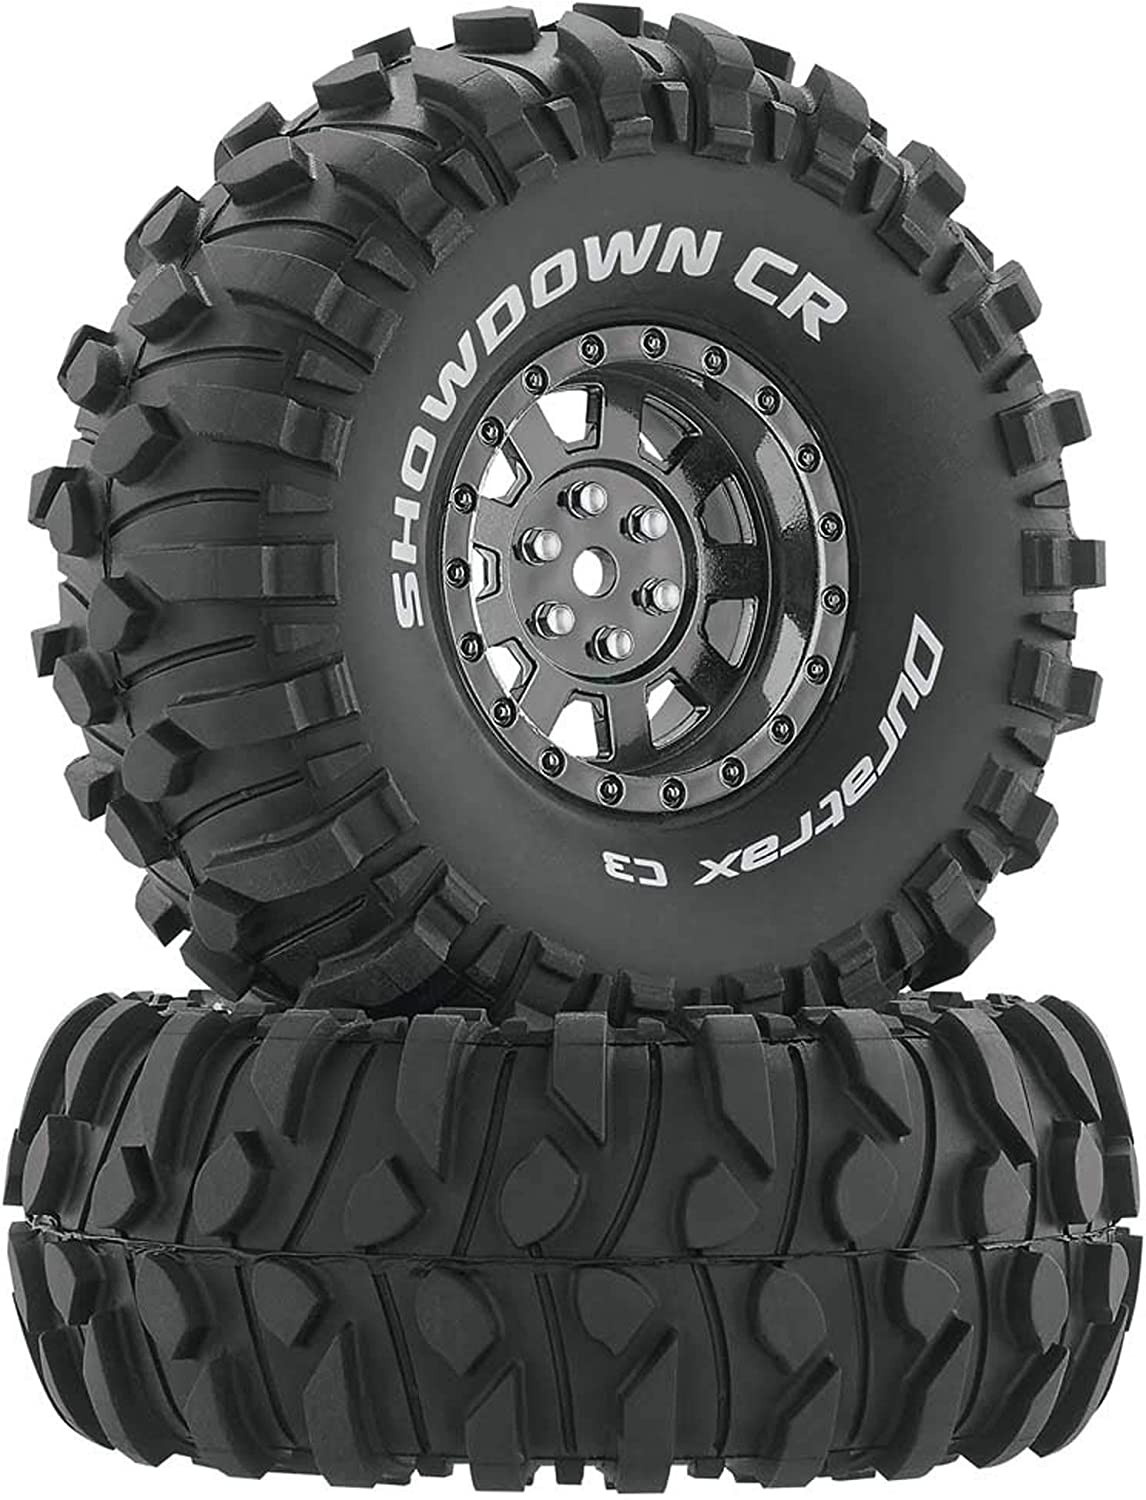 Duratrax Dtxc4034 Rc Rock Crawler Tires With Foam Inserts C3 Super Soft Compound High Traction Showdown Black 1 9 Amazon Co Uk Welcome